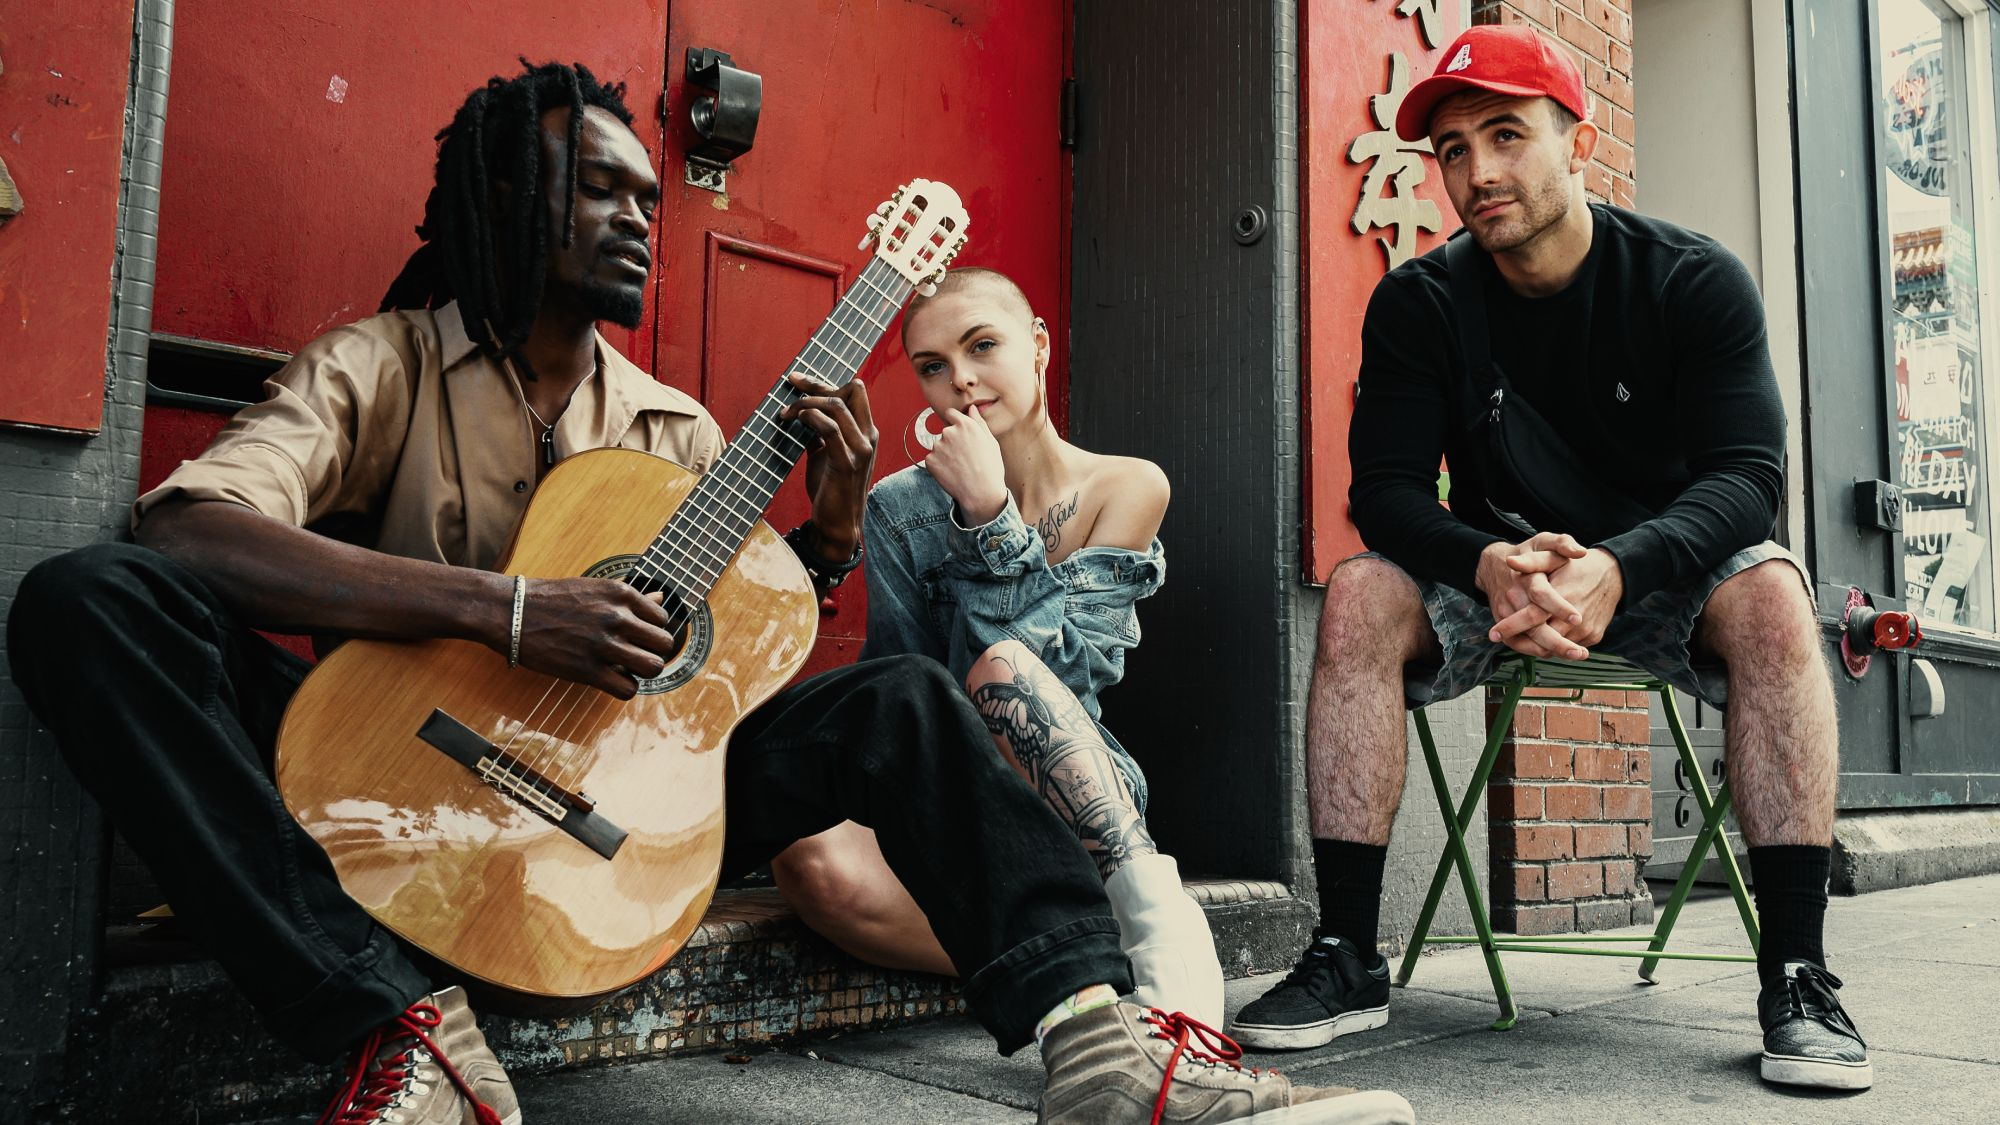 An urban music trio